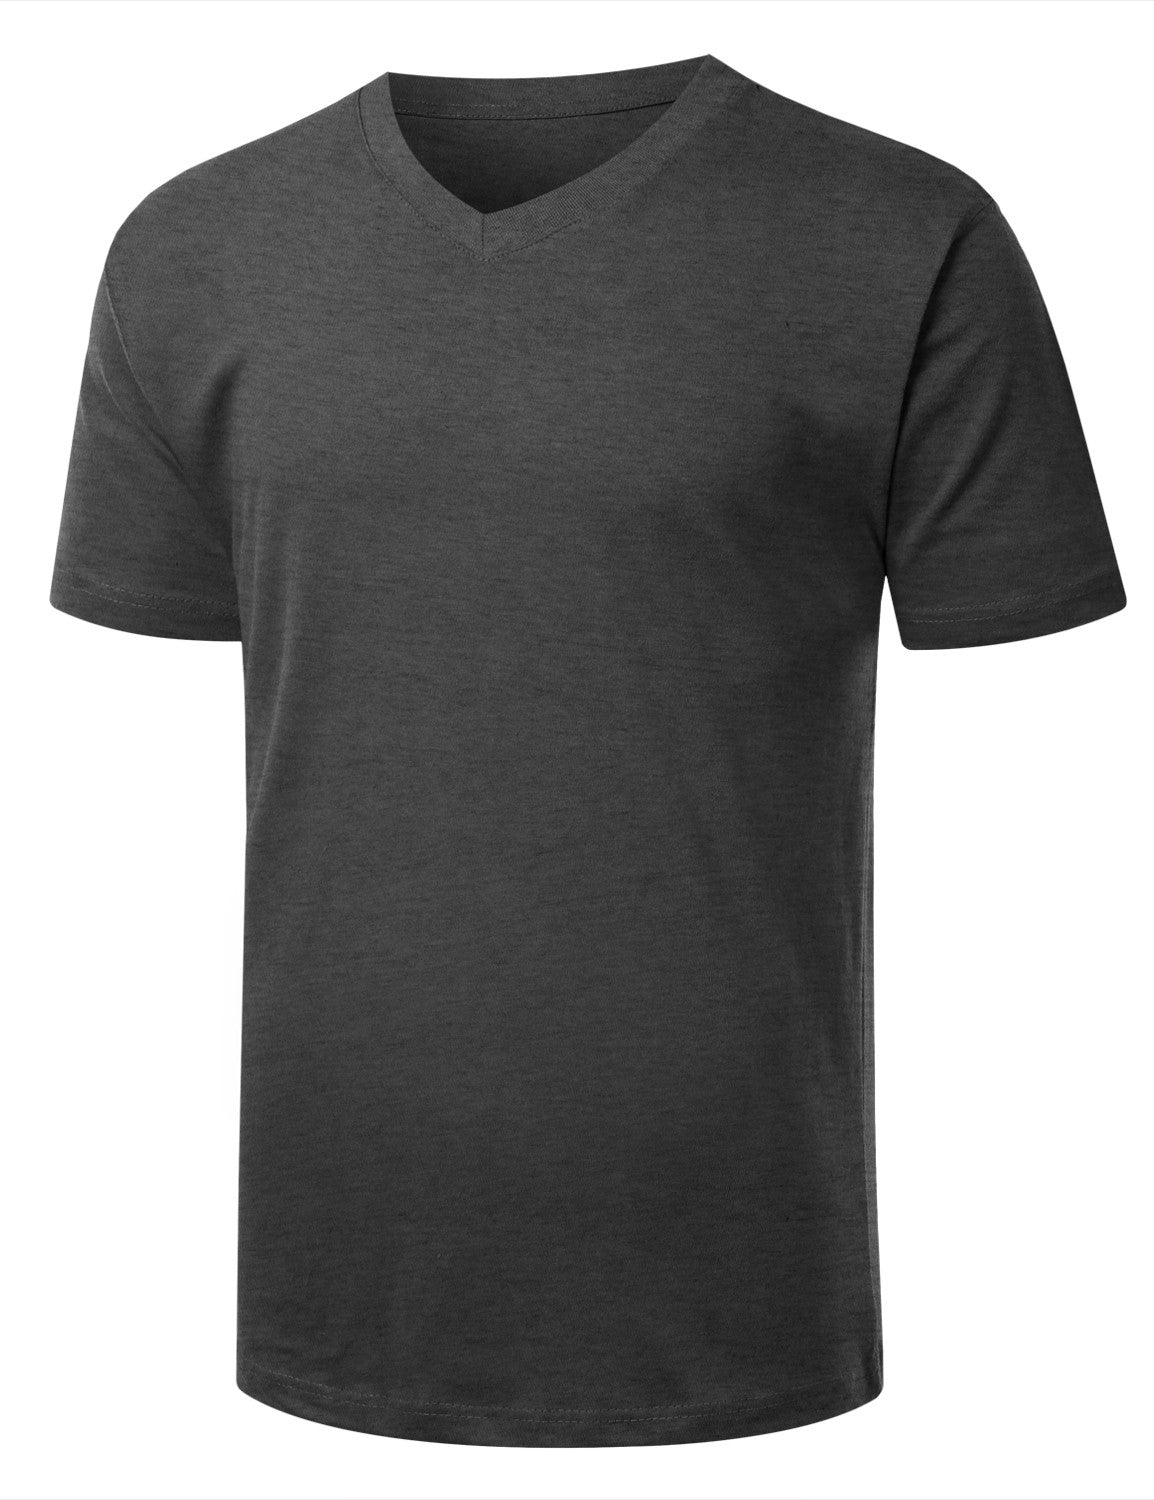 CHARCOAL Basic V-Neck T-Shirt - URBANCREWS